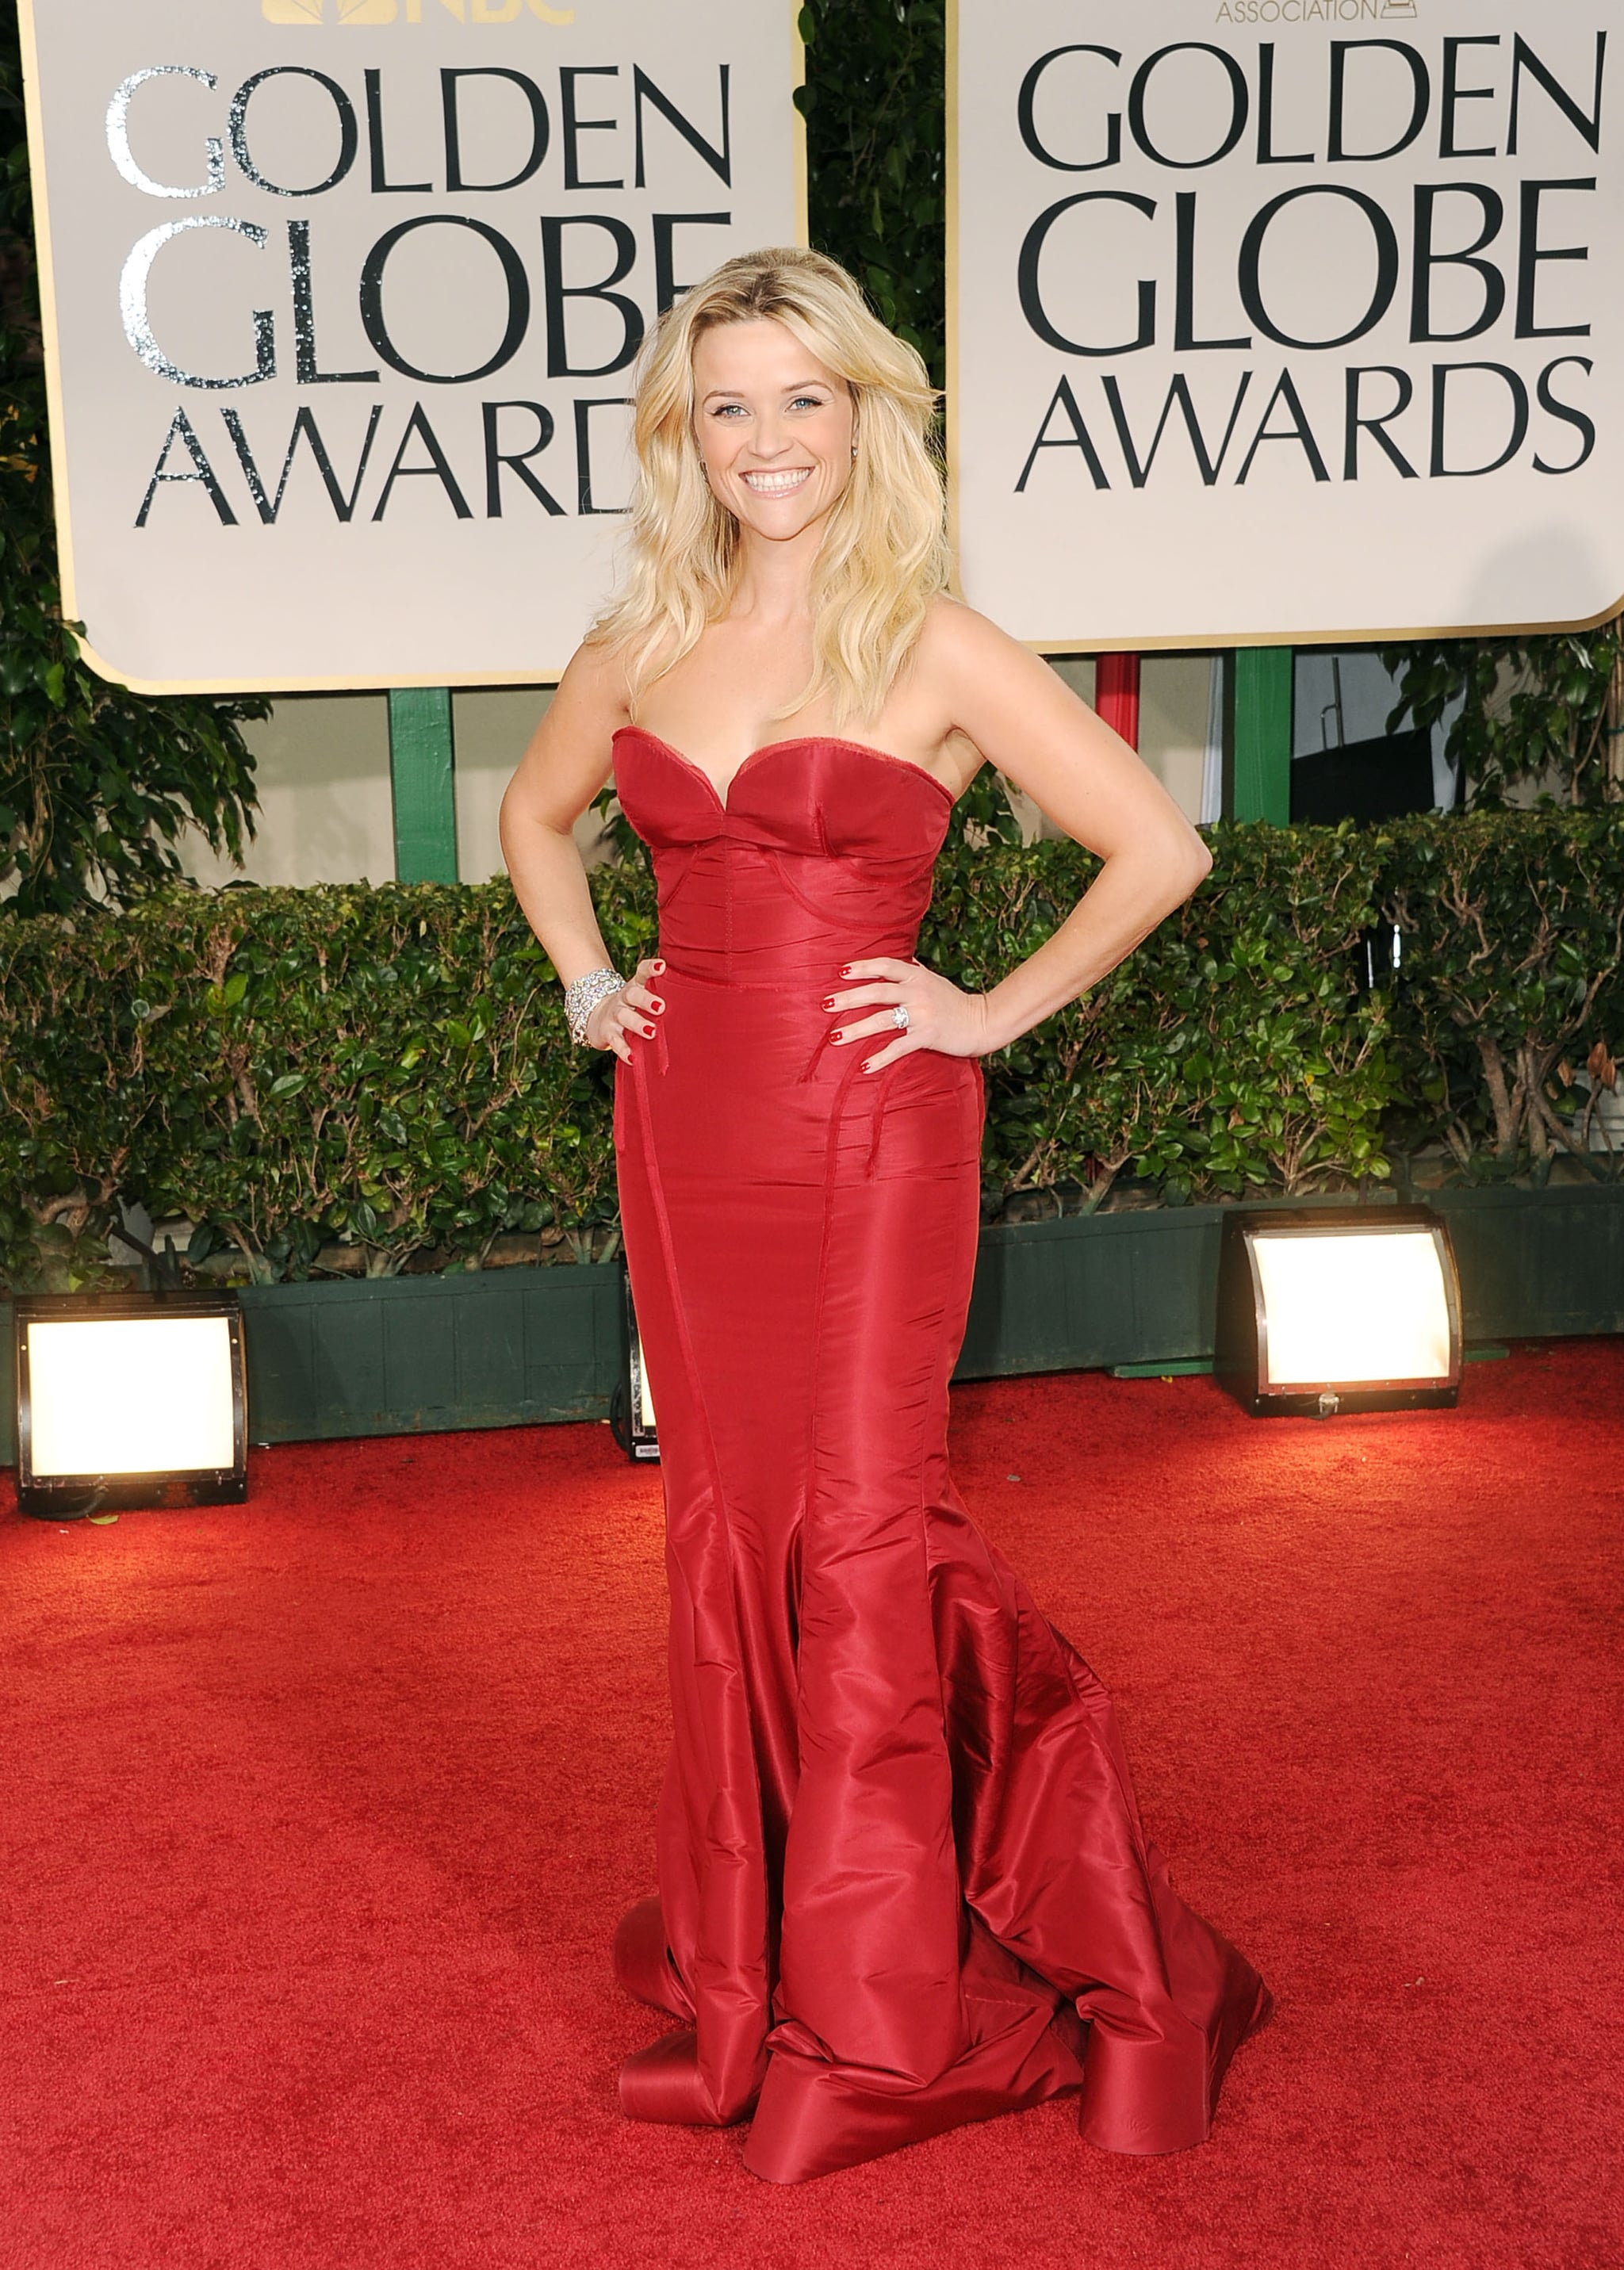 Reese Withespoon in red at the Golden Globes.